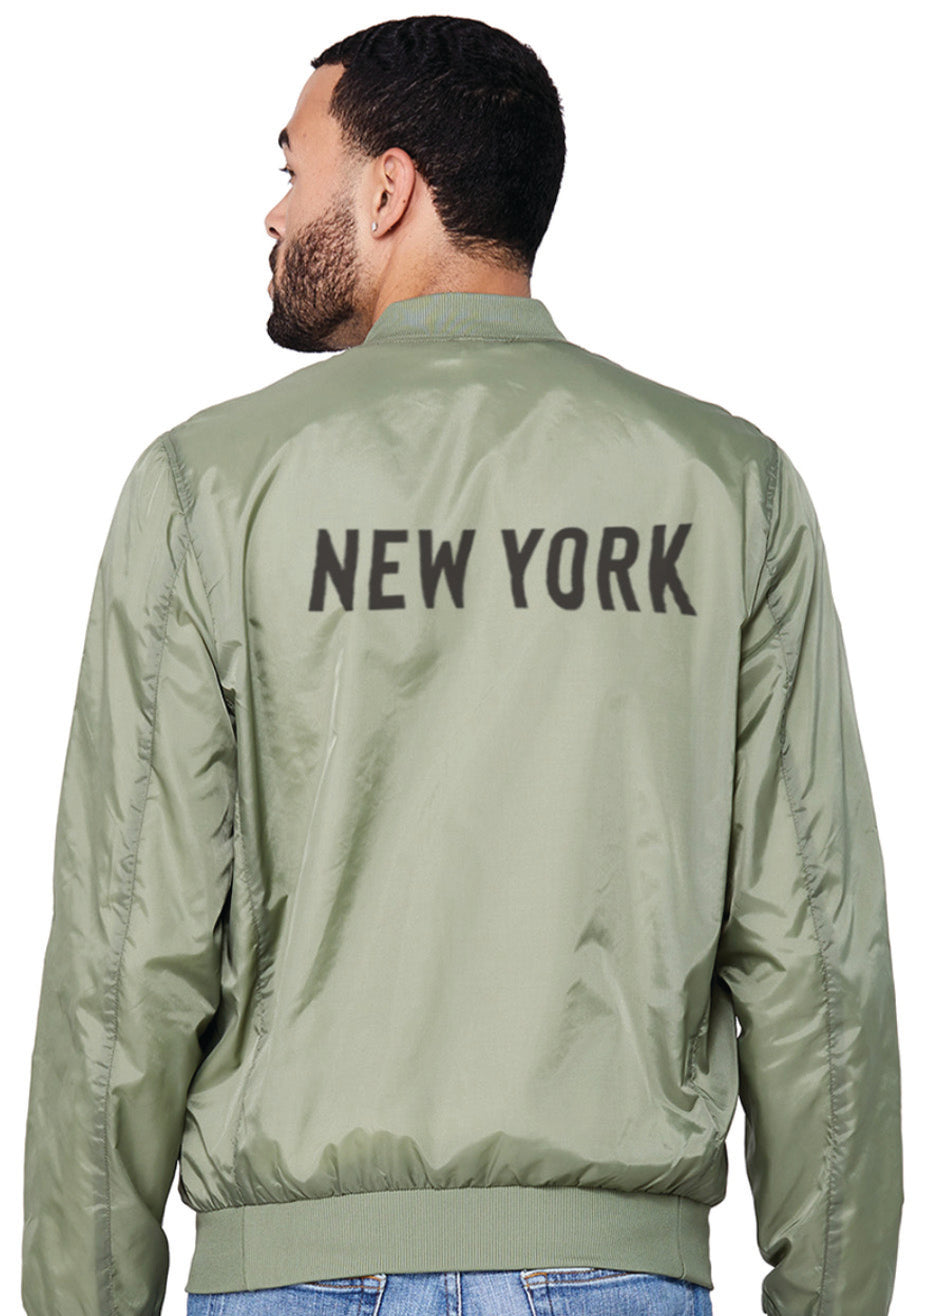 New York Bomber Jacket